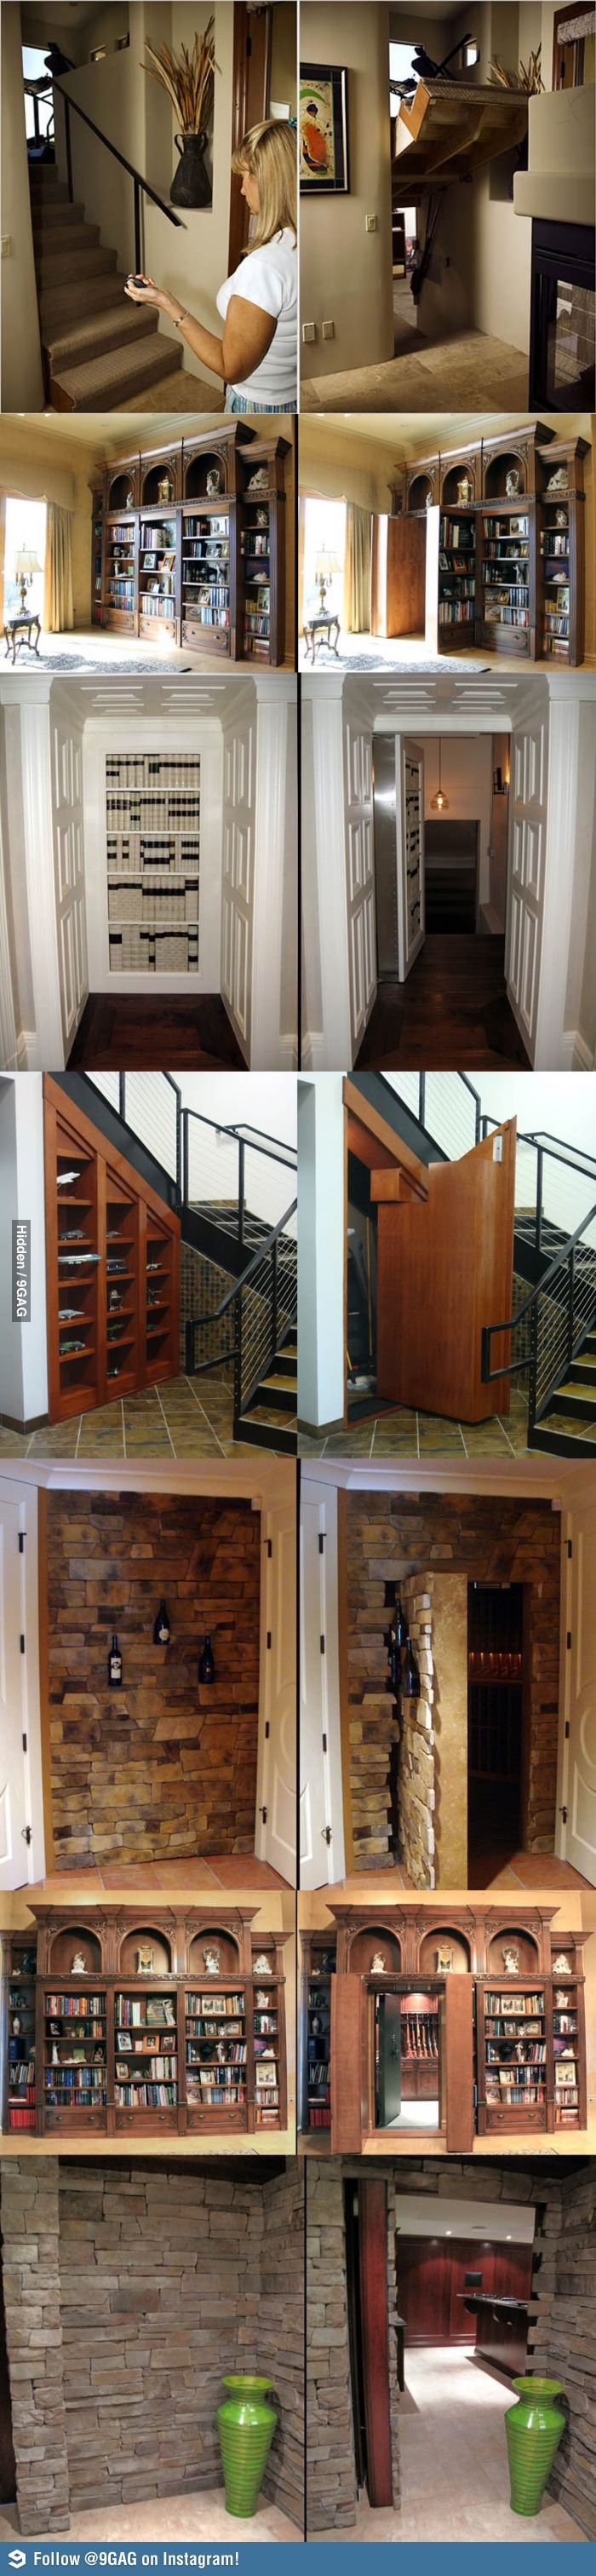 Secret Hidden Passageways For The Home: I need all of these.